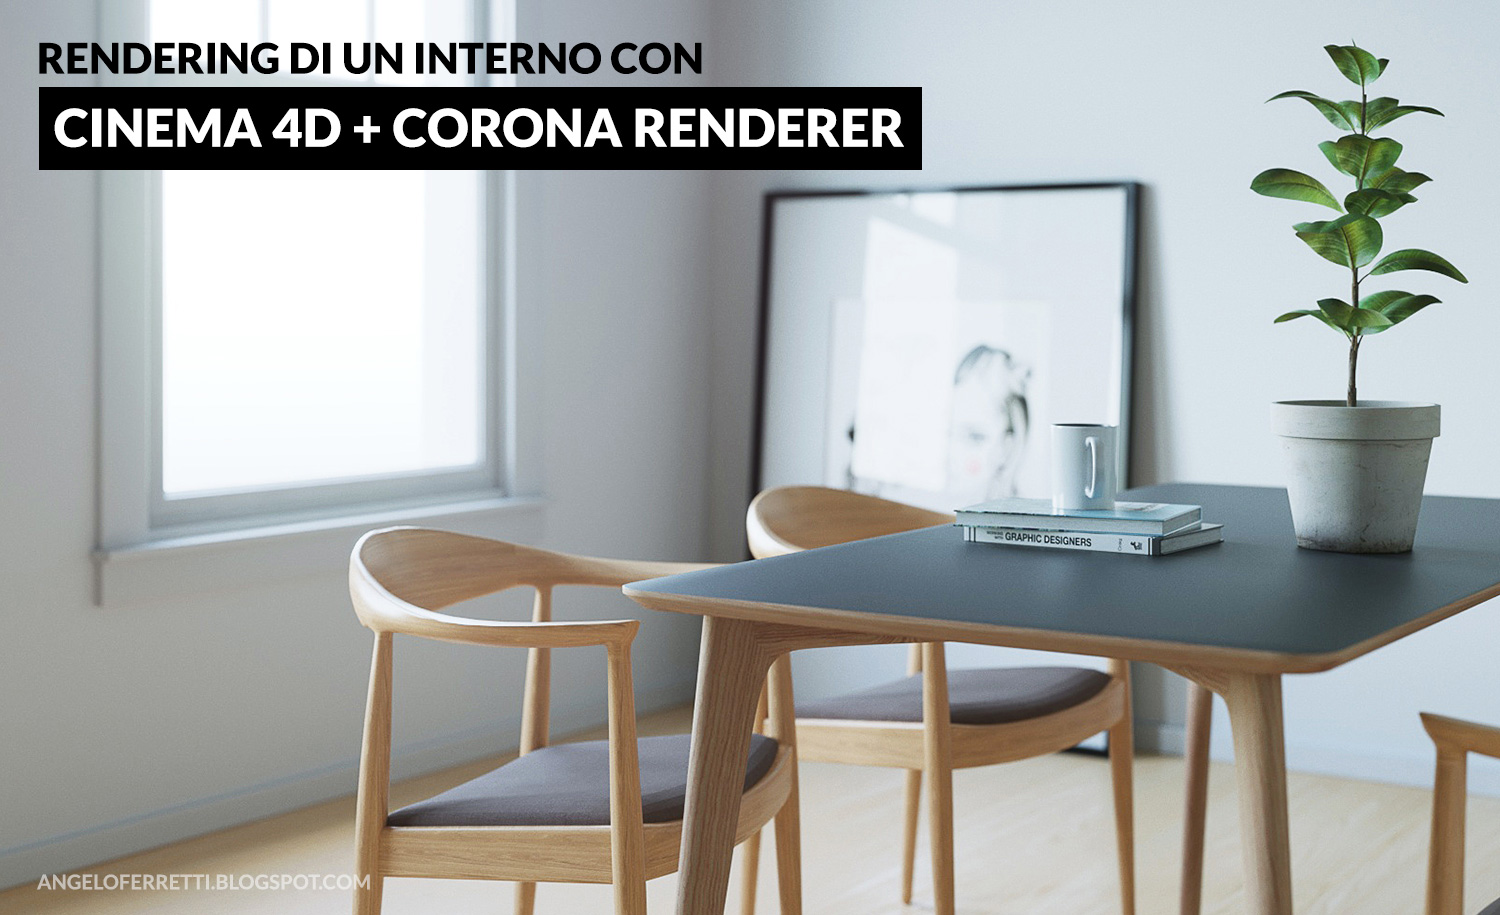 Rendering di un interno con cinema 4d corona renderer angelo